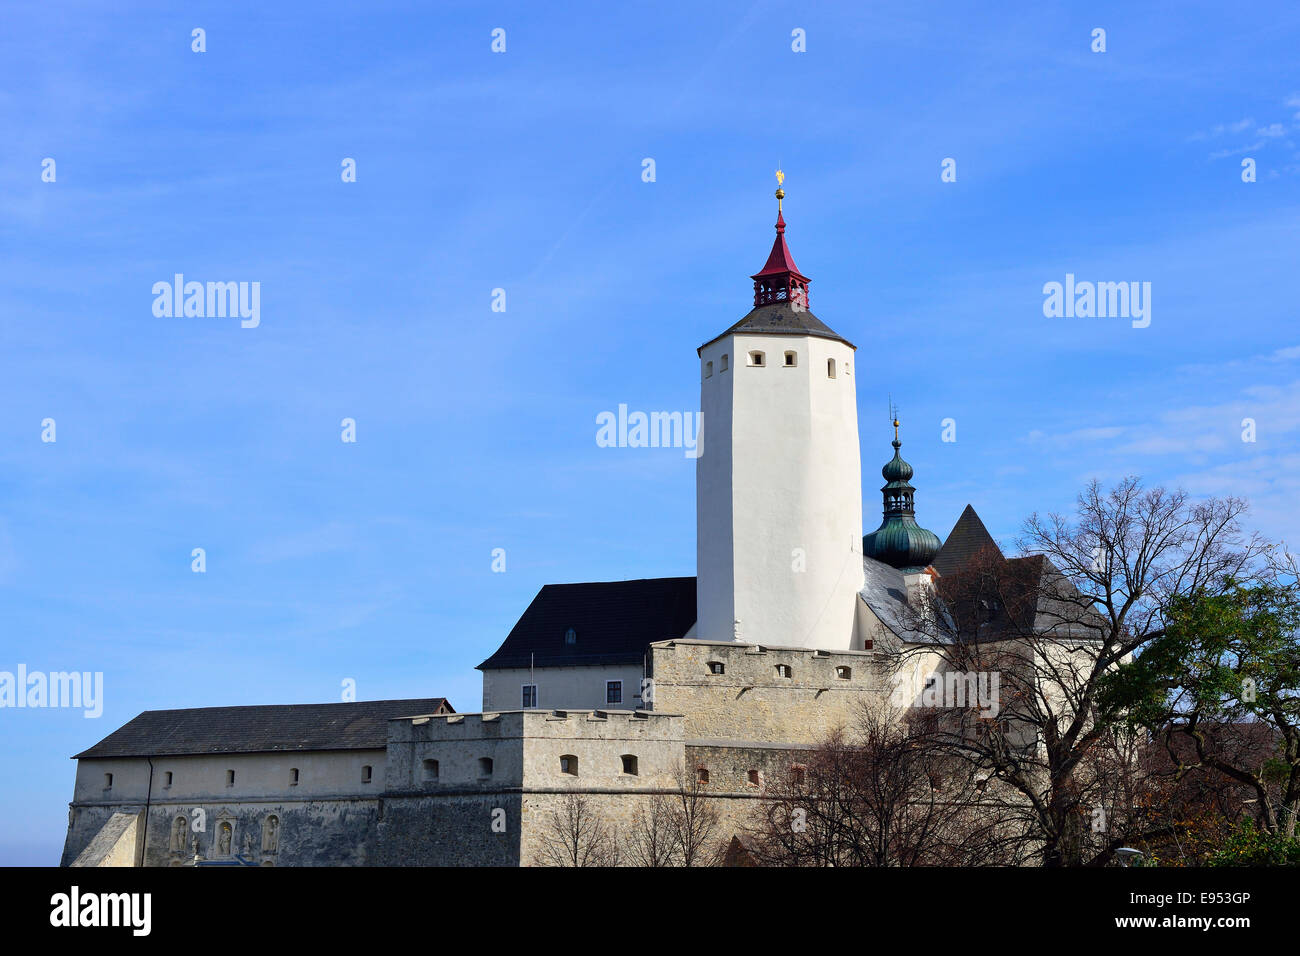 Forchtenstein Castle with its prominent castle keep, Forchenstein, Burgenland, Austria - Stock Image